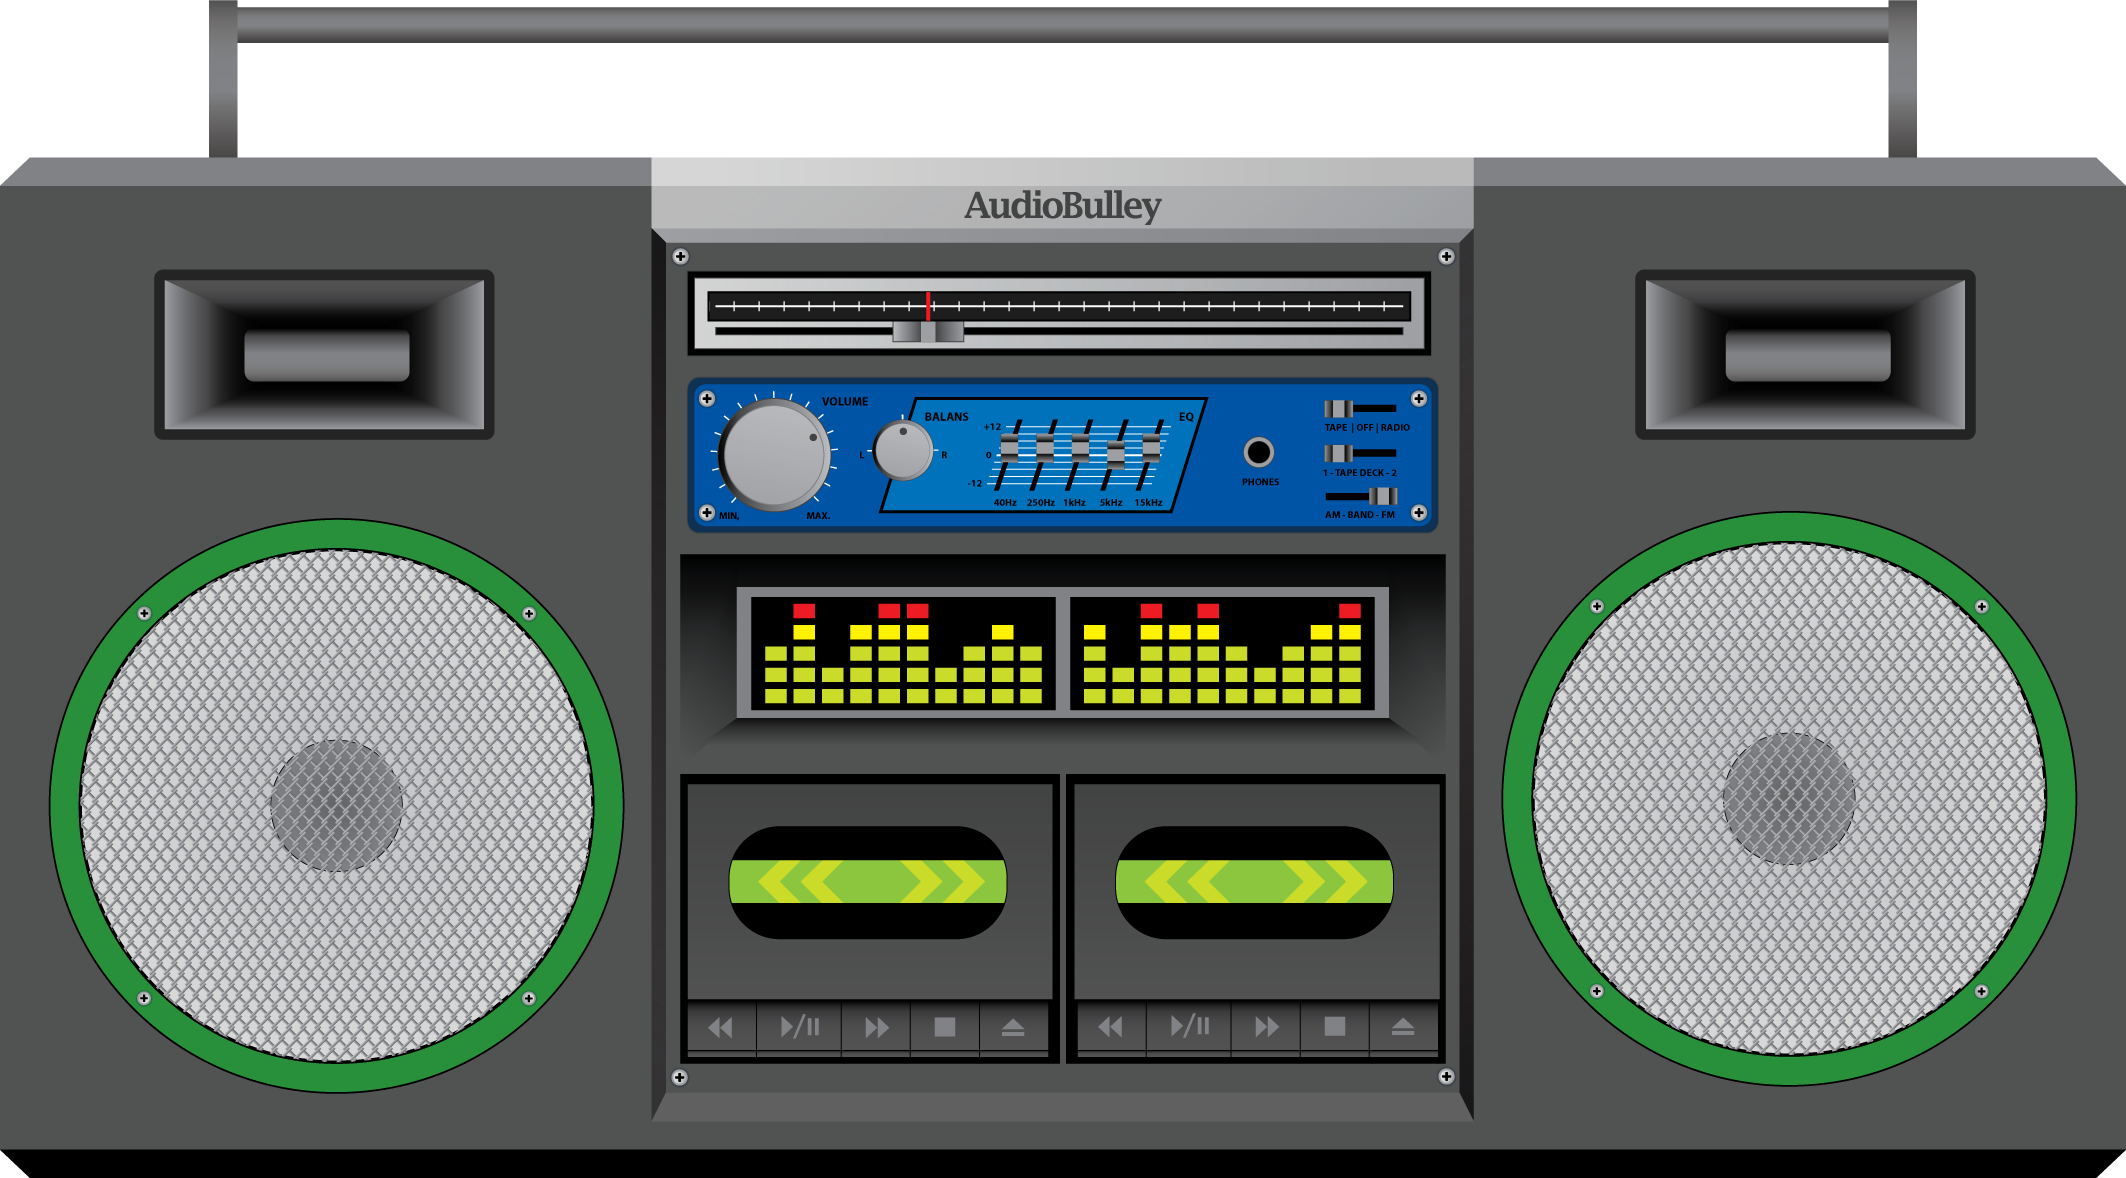 Boombox by N8N on DeviantArt